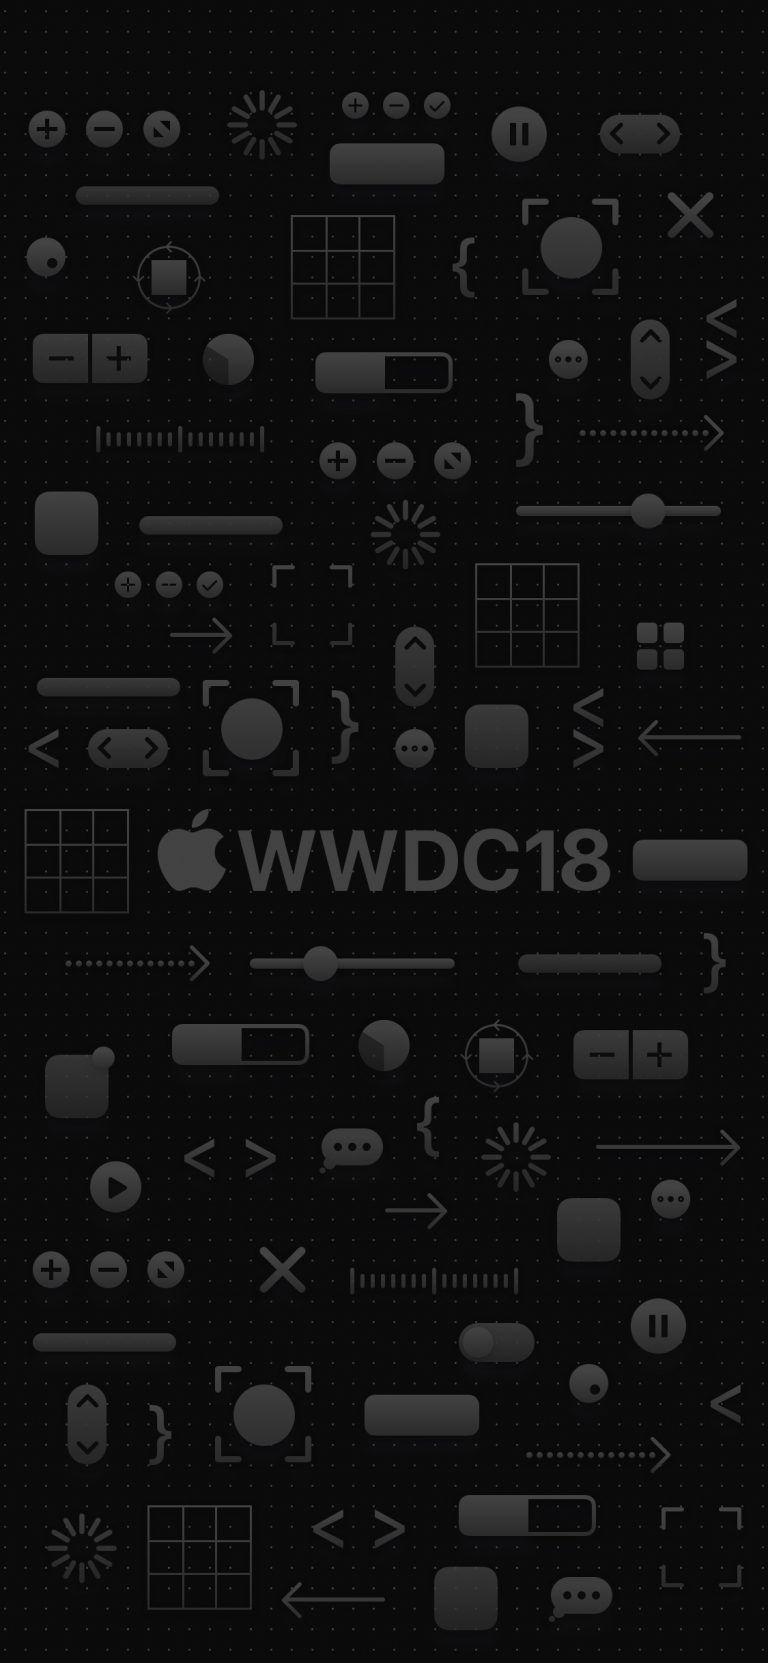 iPhone X ALL Dark WWDC iOS 12 Wallpaper #ios13wallpaper